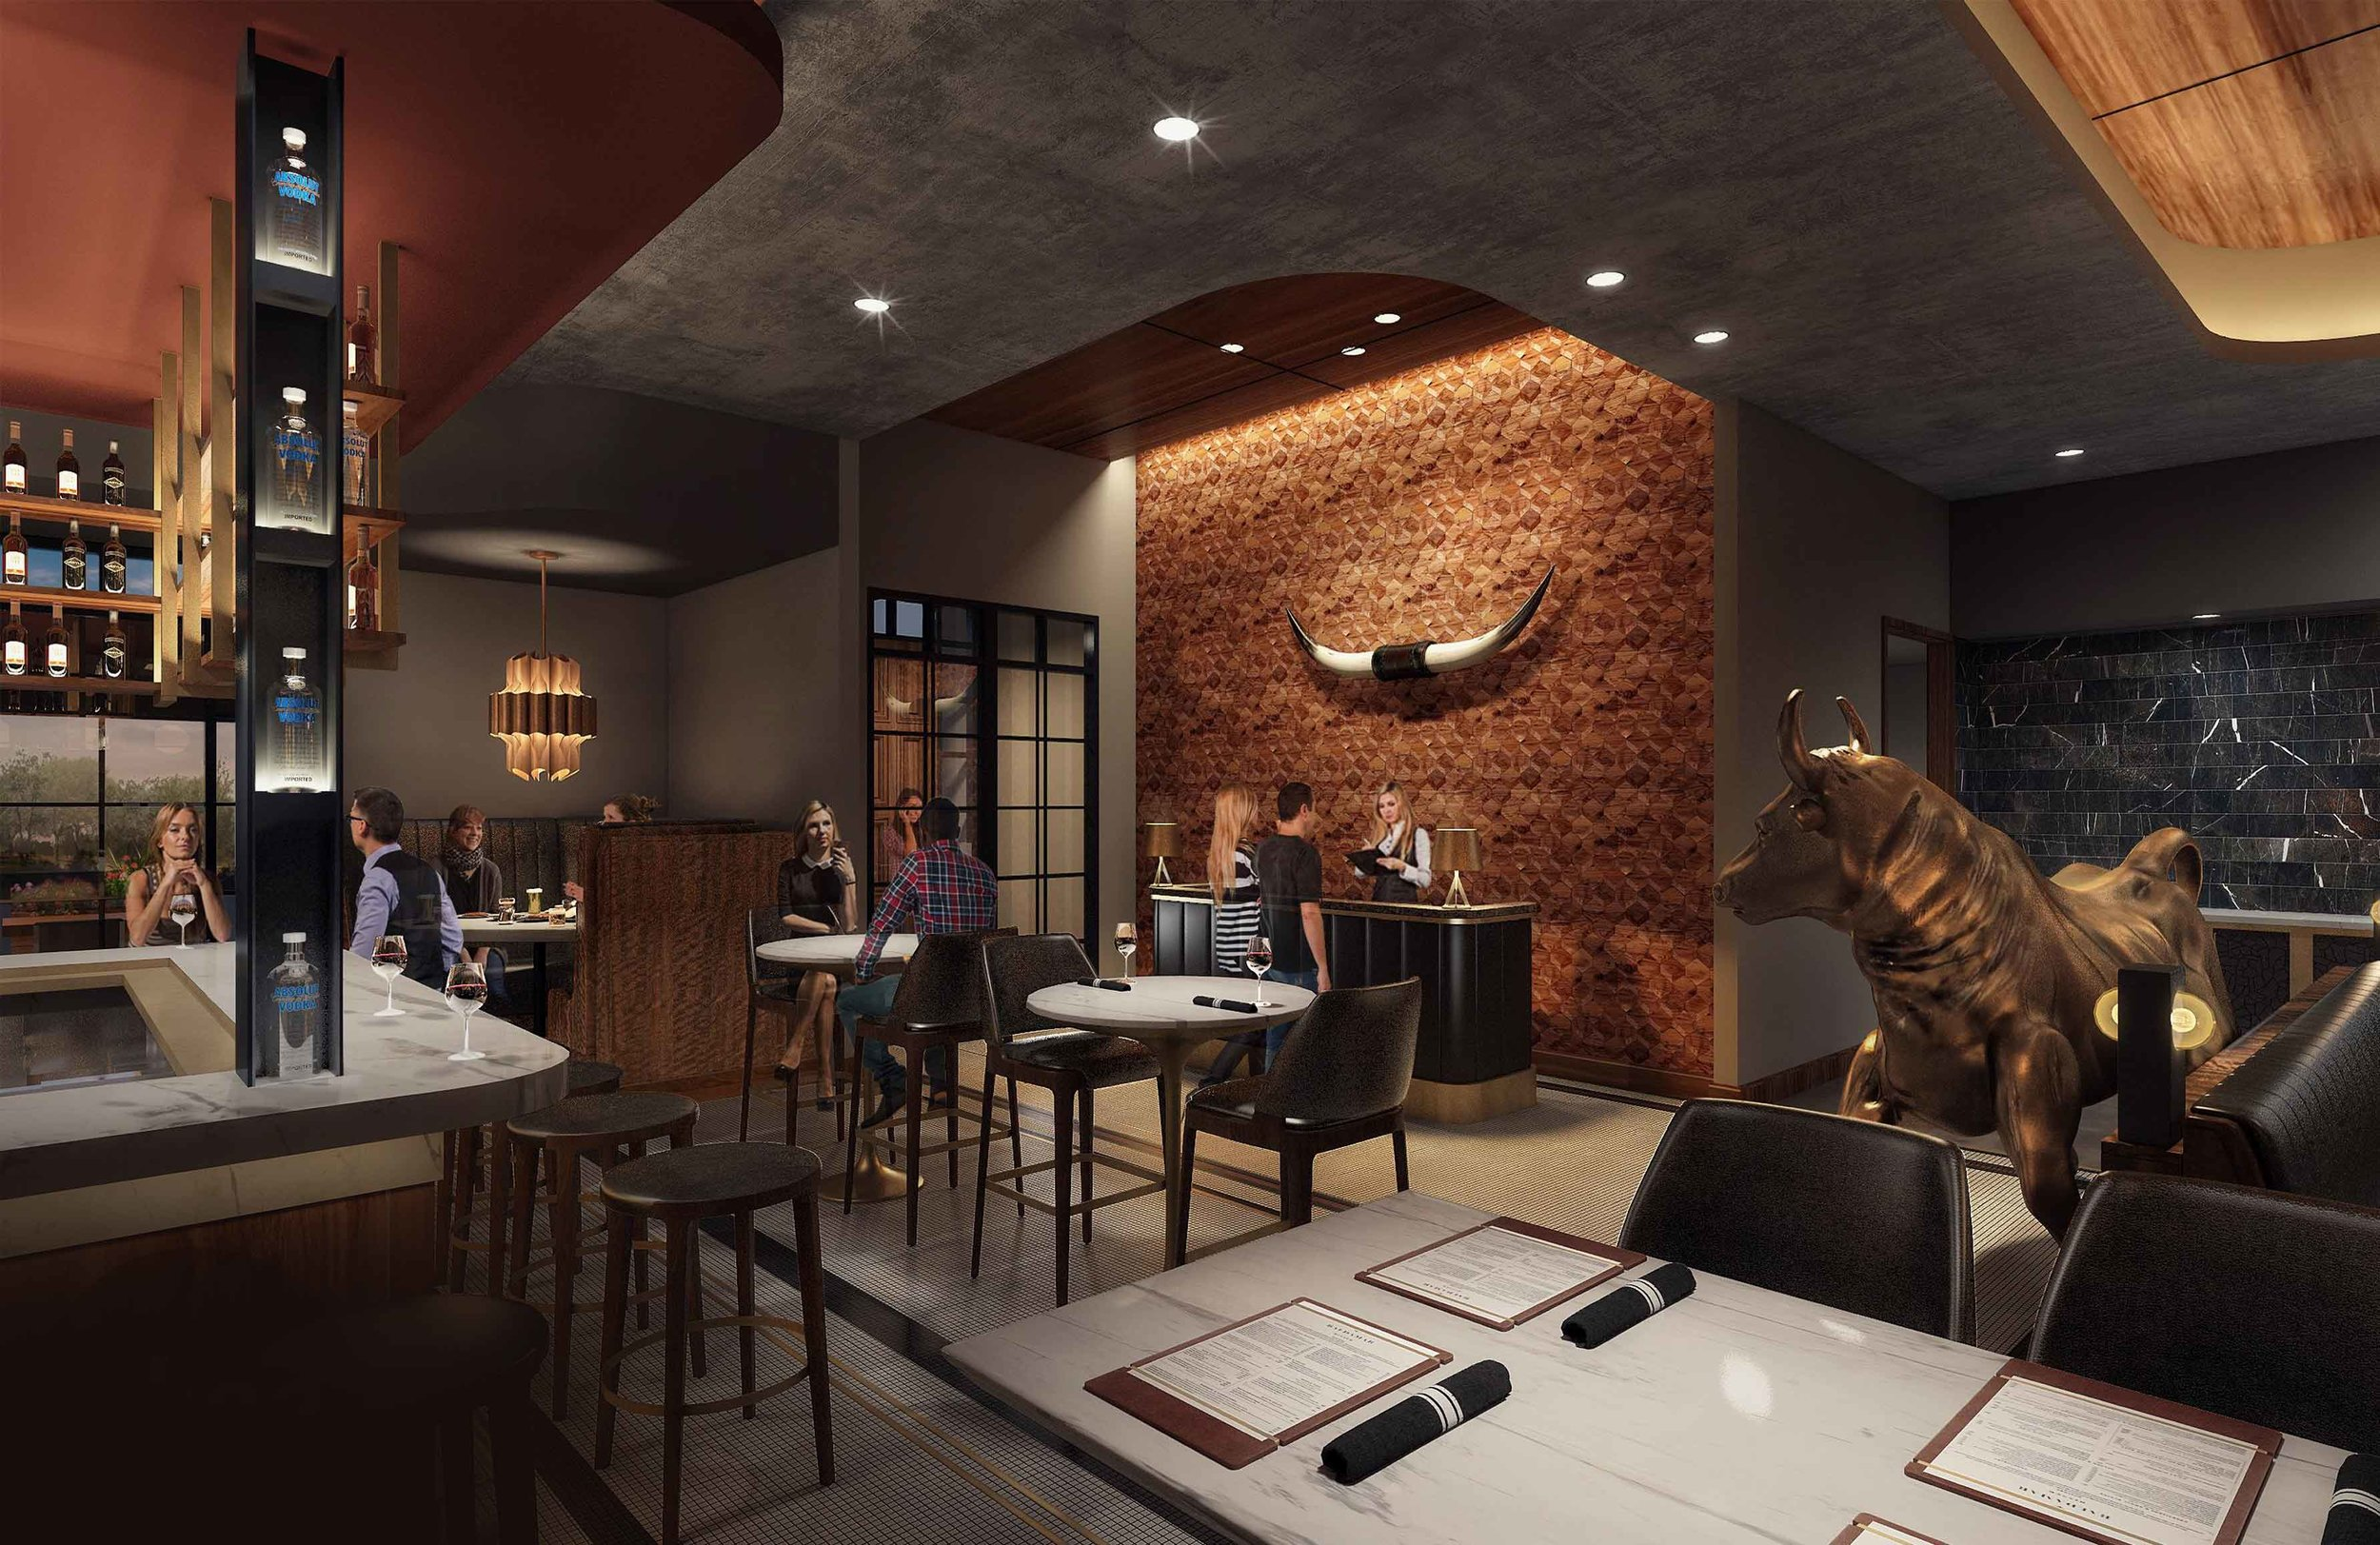 Enjoy a unique dining experience overlooking Lake Minnetonka - A one-of-a-kind space that can be tailored to any event need. Accommodates up to 56 guests and is semi-private. AV upon request.